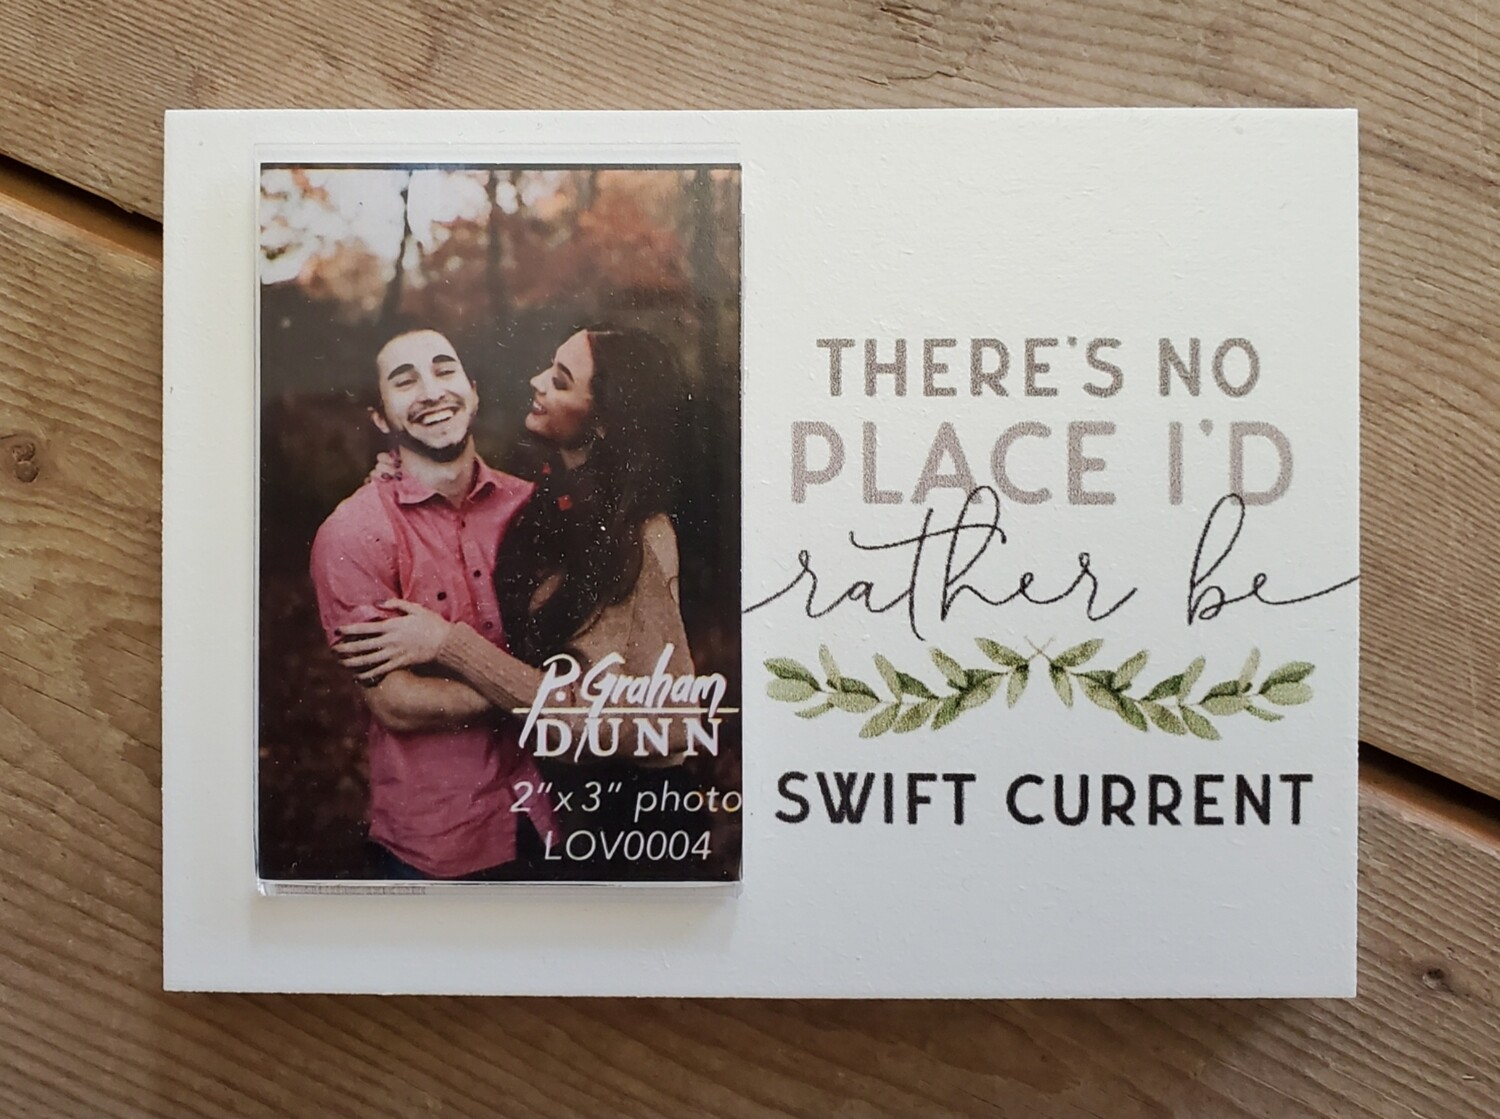 """""""There's No Place I'd Rather Be - Swift Current"""" 3"""" x 2"""" Photo Frame"""